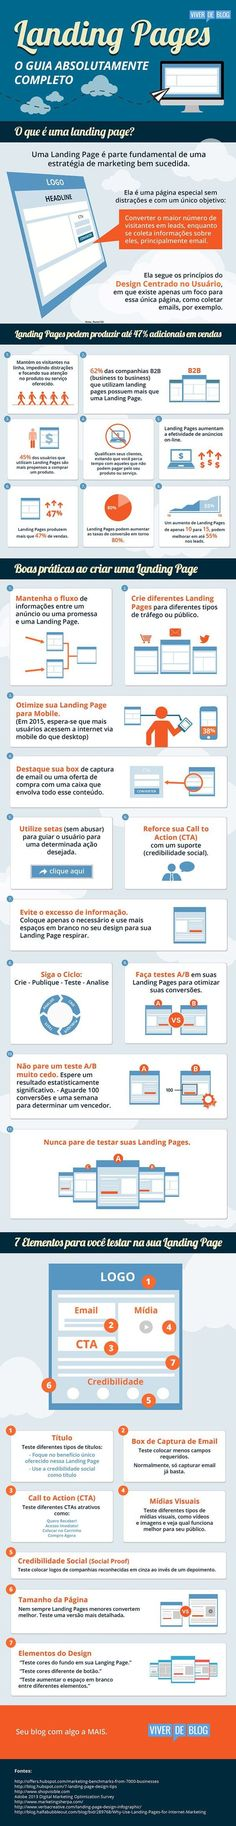 Infográfico Landing Pages Latest News & Trends on #digitalmarketing | http://webworksagency.com